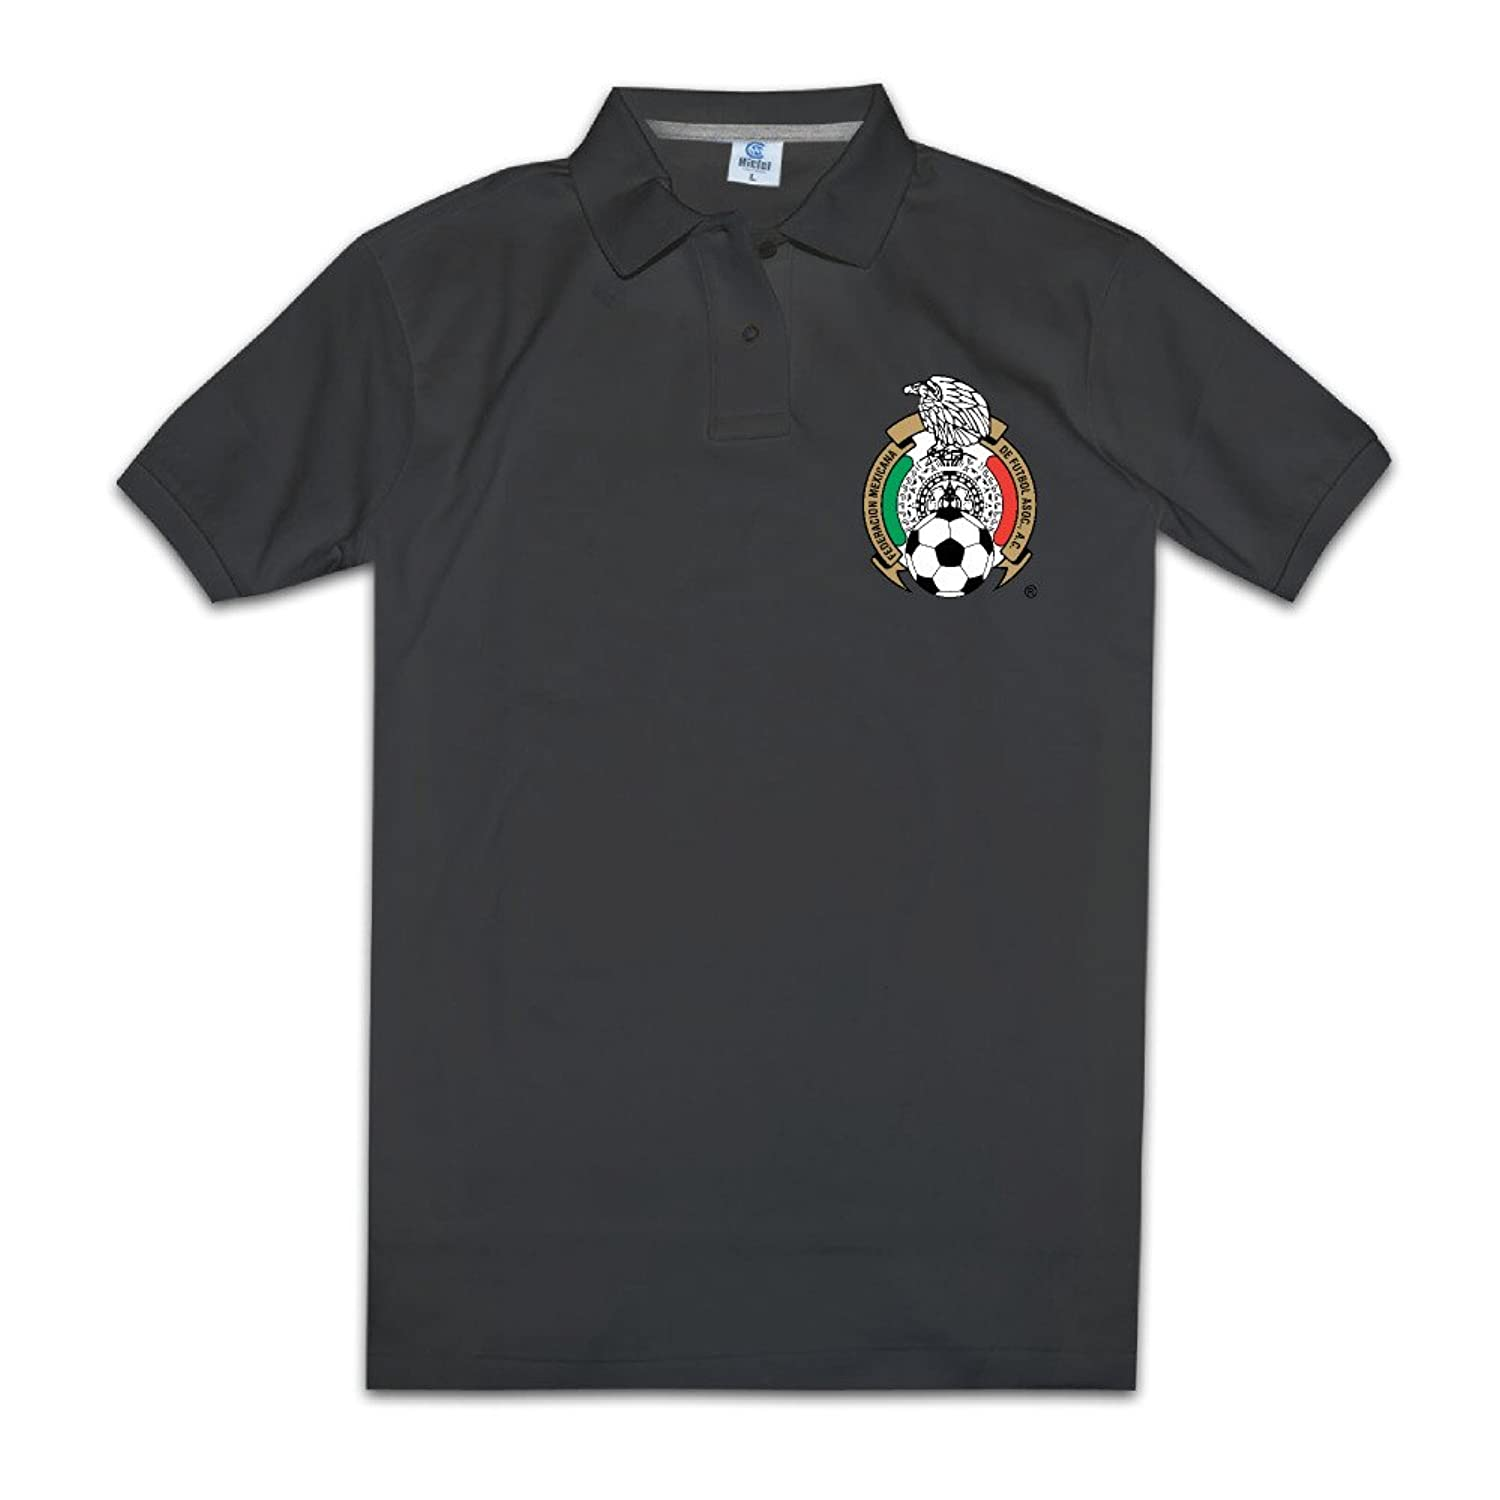 Boyfriend Vintage Brand New 2016 Copa America Mexico National Football Team Polo Tshirts Size S Color Black